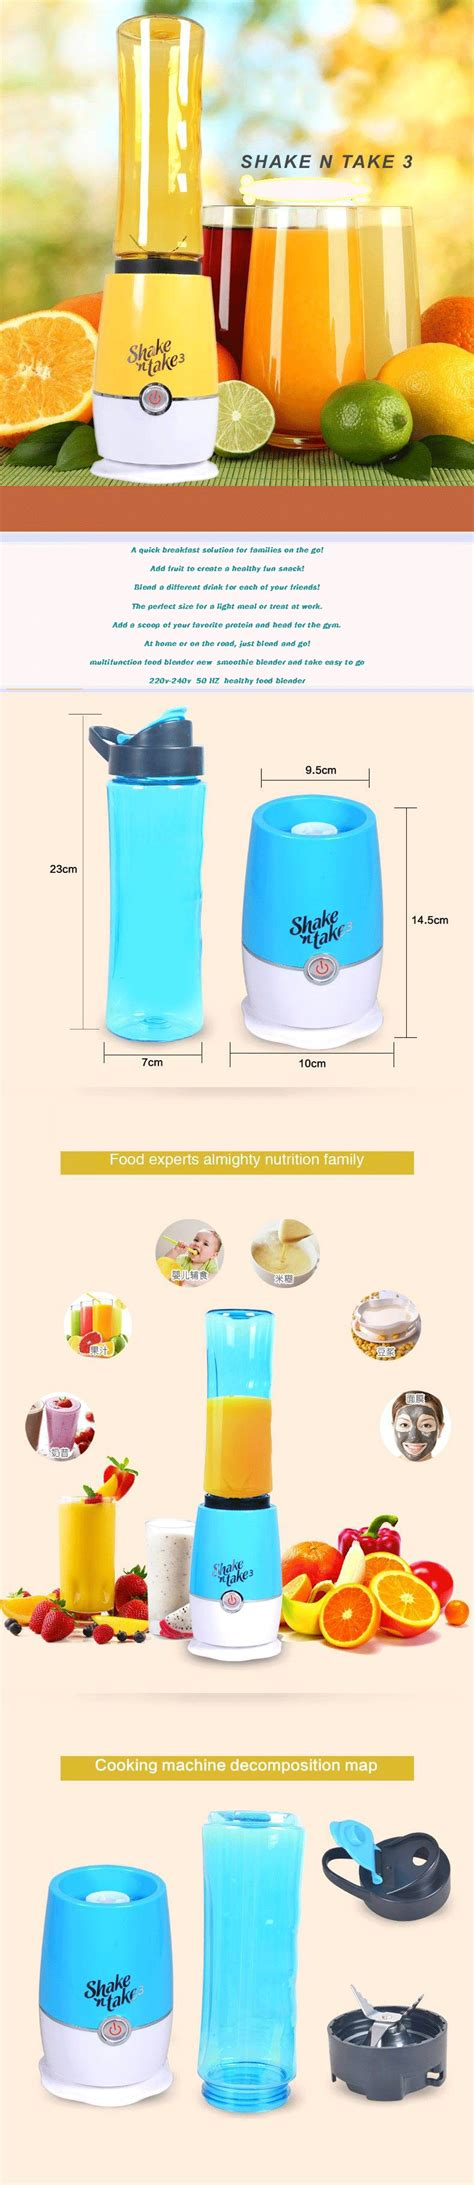 Mini Blender Shake N Take 3 Hello Kittalat Membuat Minuman Juice Buah buy lowest price ready stock fast delivery brand new